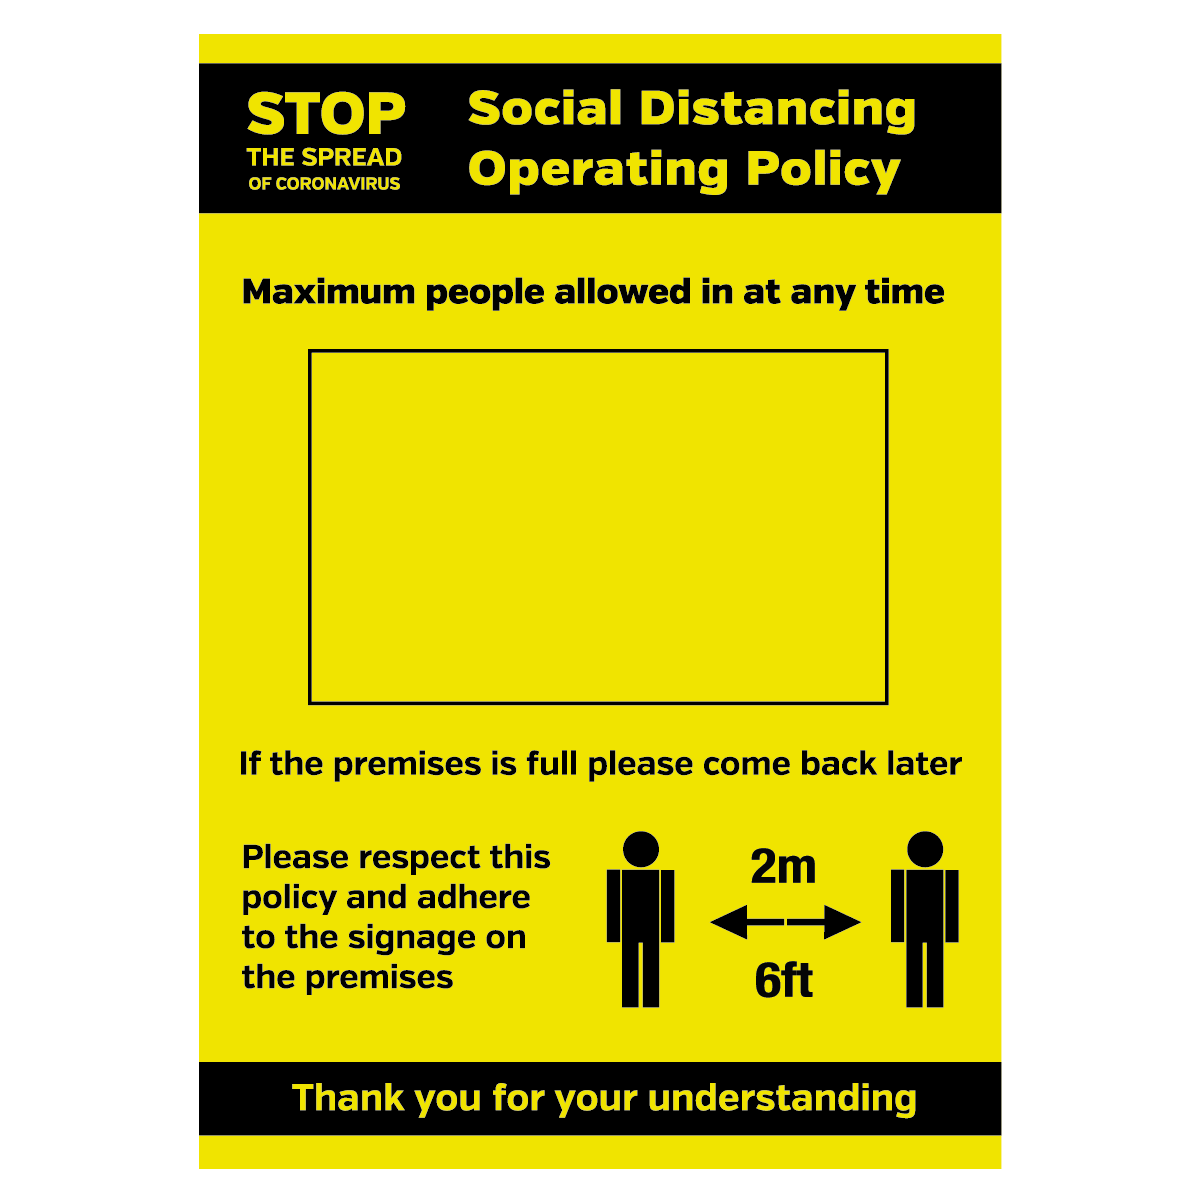 Social Distancing Operation Policy maxiumum people allowed in at any time sign